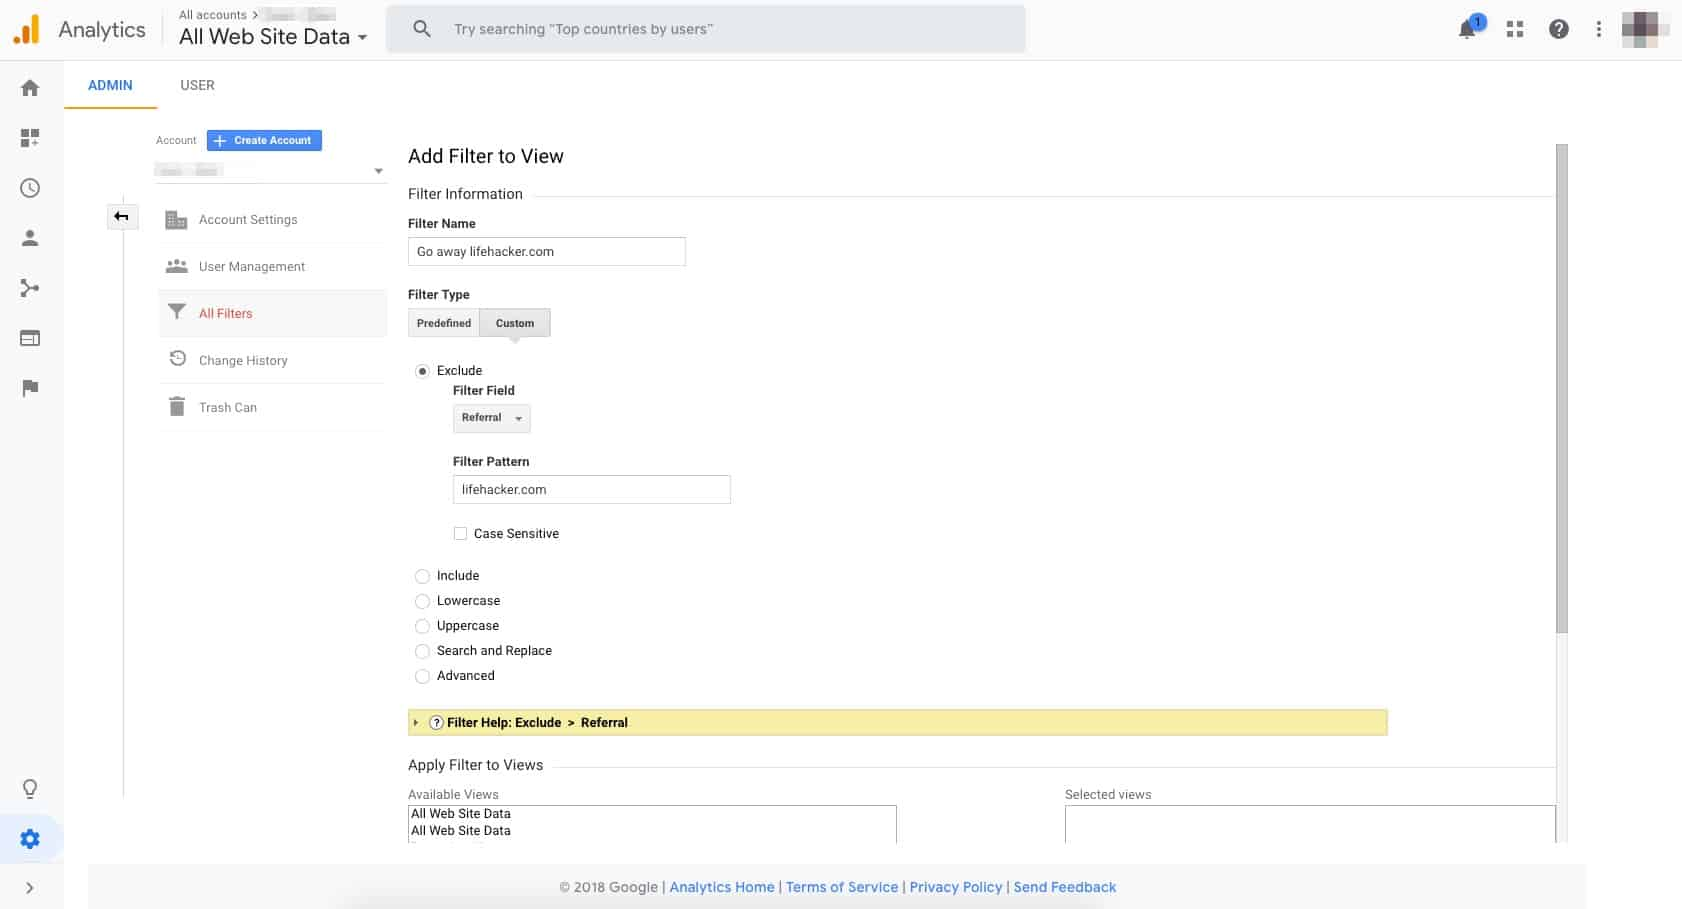 A screen capture of the Google Analytics admin portal, showing a detailed view of adding a filter.